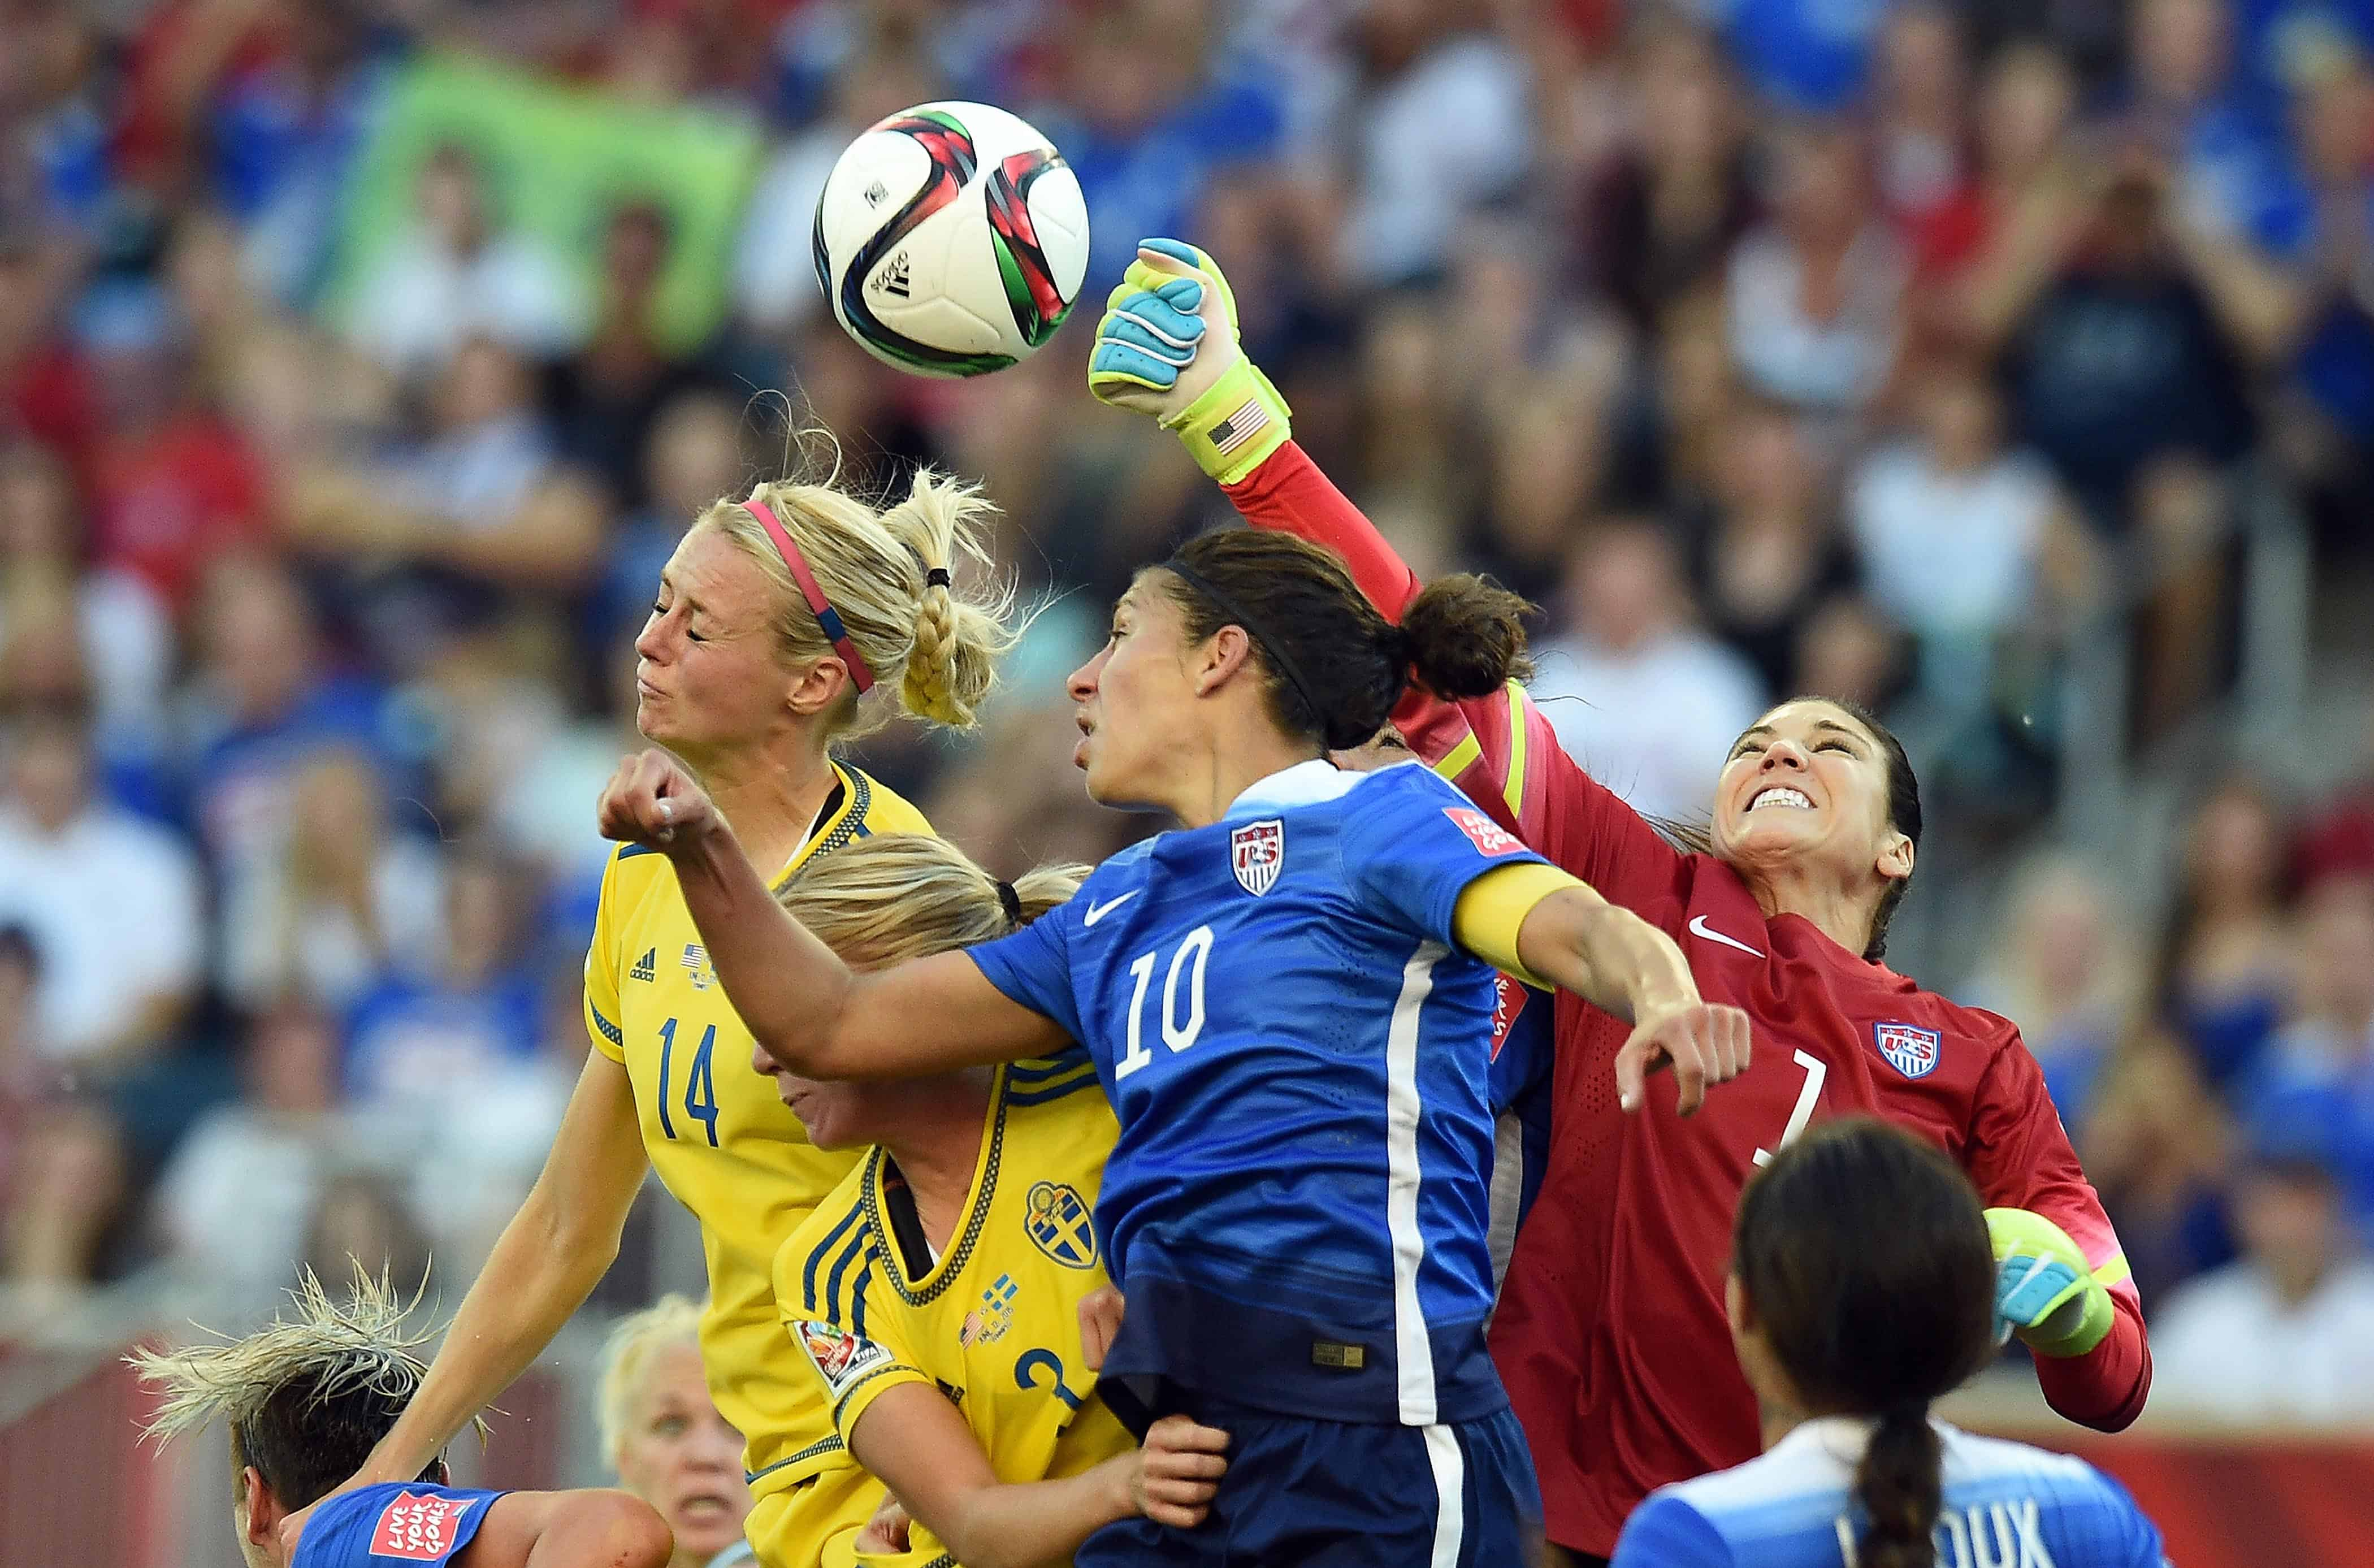 U.S. goalkeeper Hope Solo, right, punches the ball away.